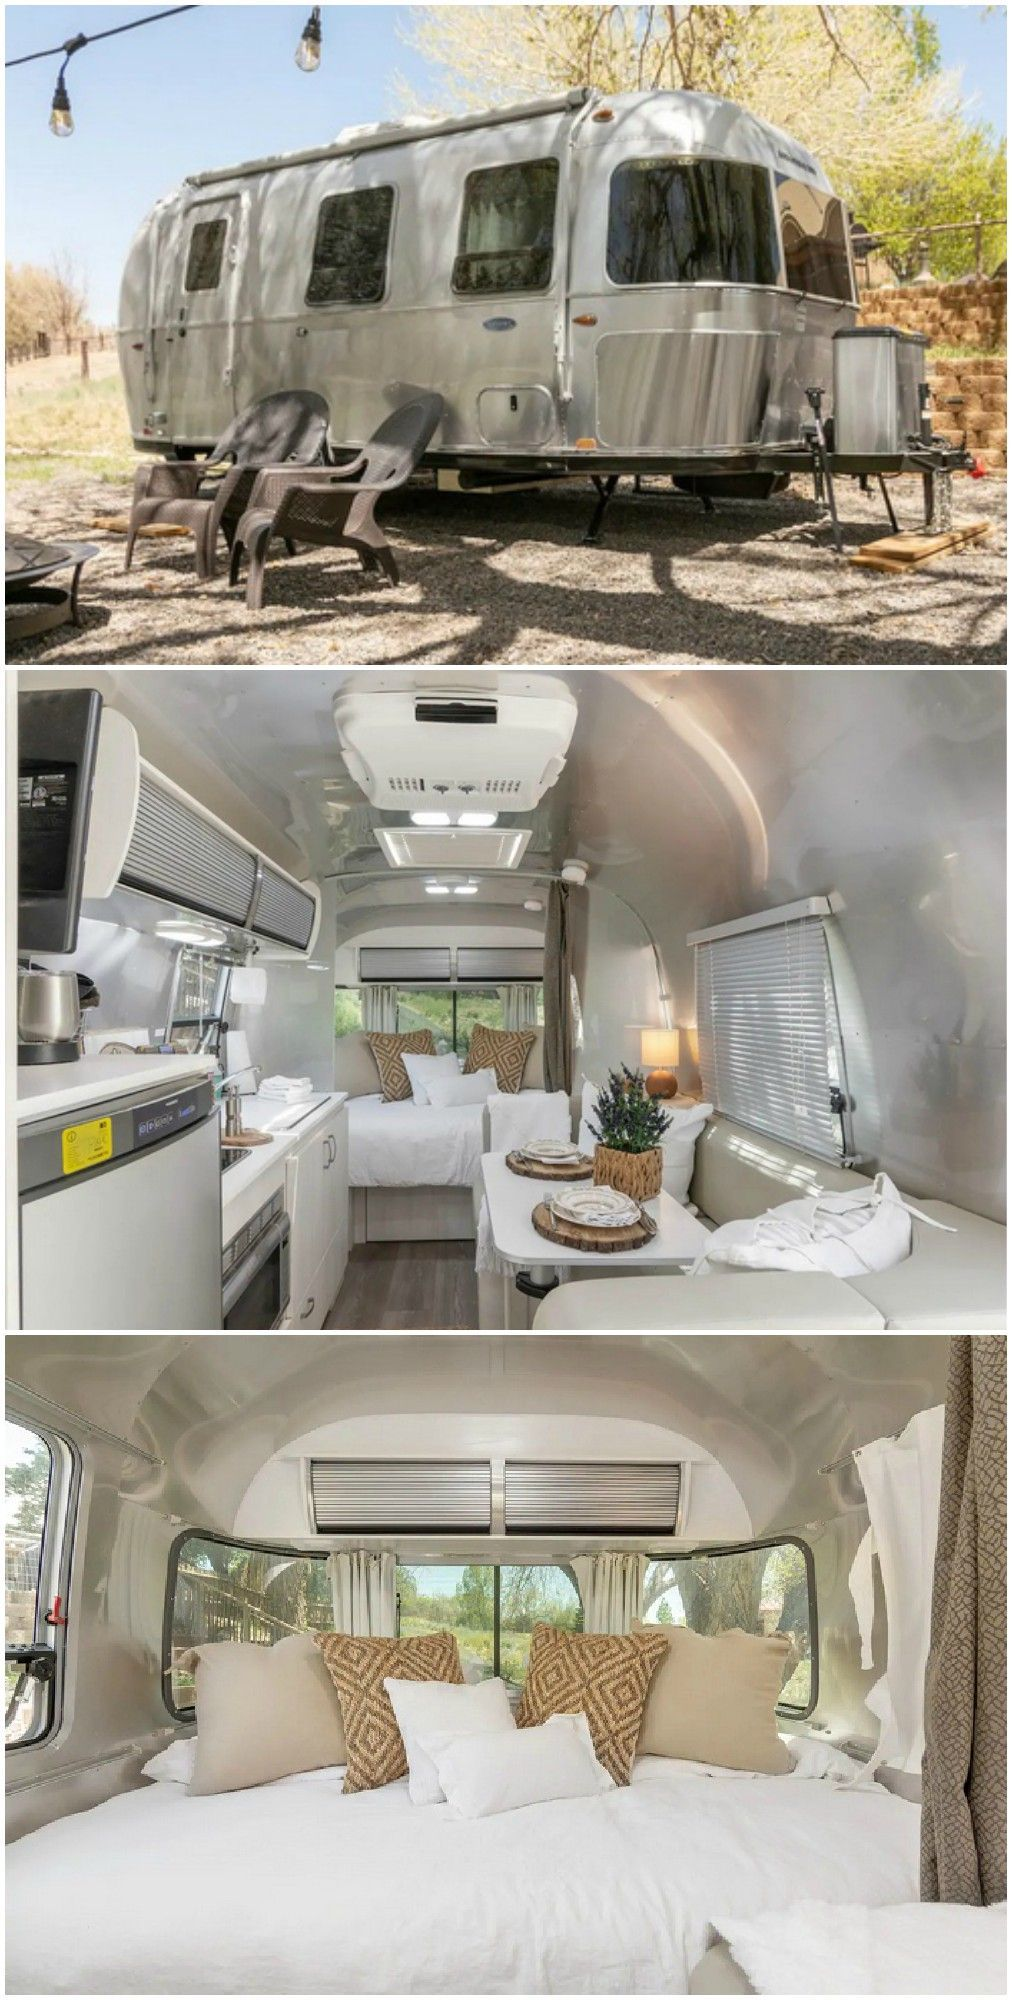 14 Gorgeous Airstream Trailers To Rent For Your Next Vacation In 2020 Airstream Trailers Airstream Interior Airstream Camping